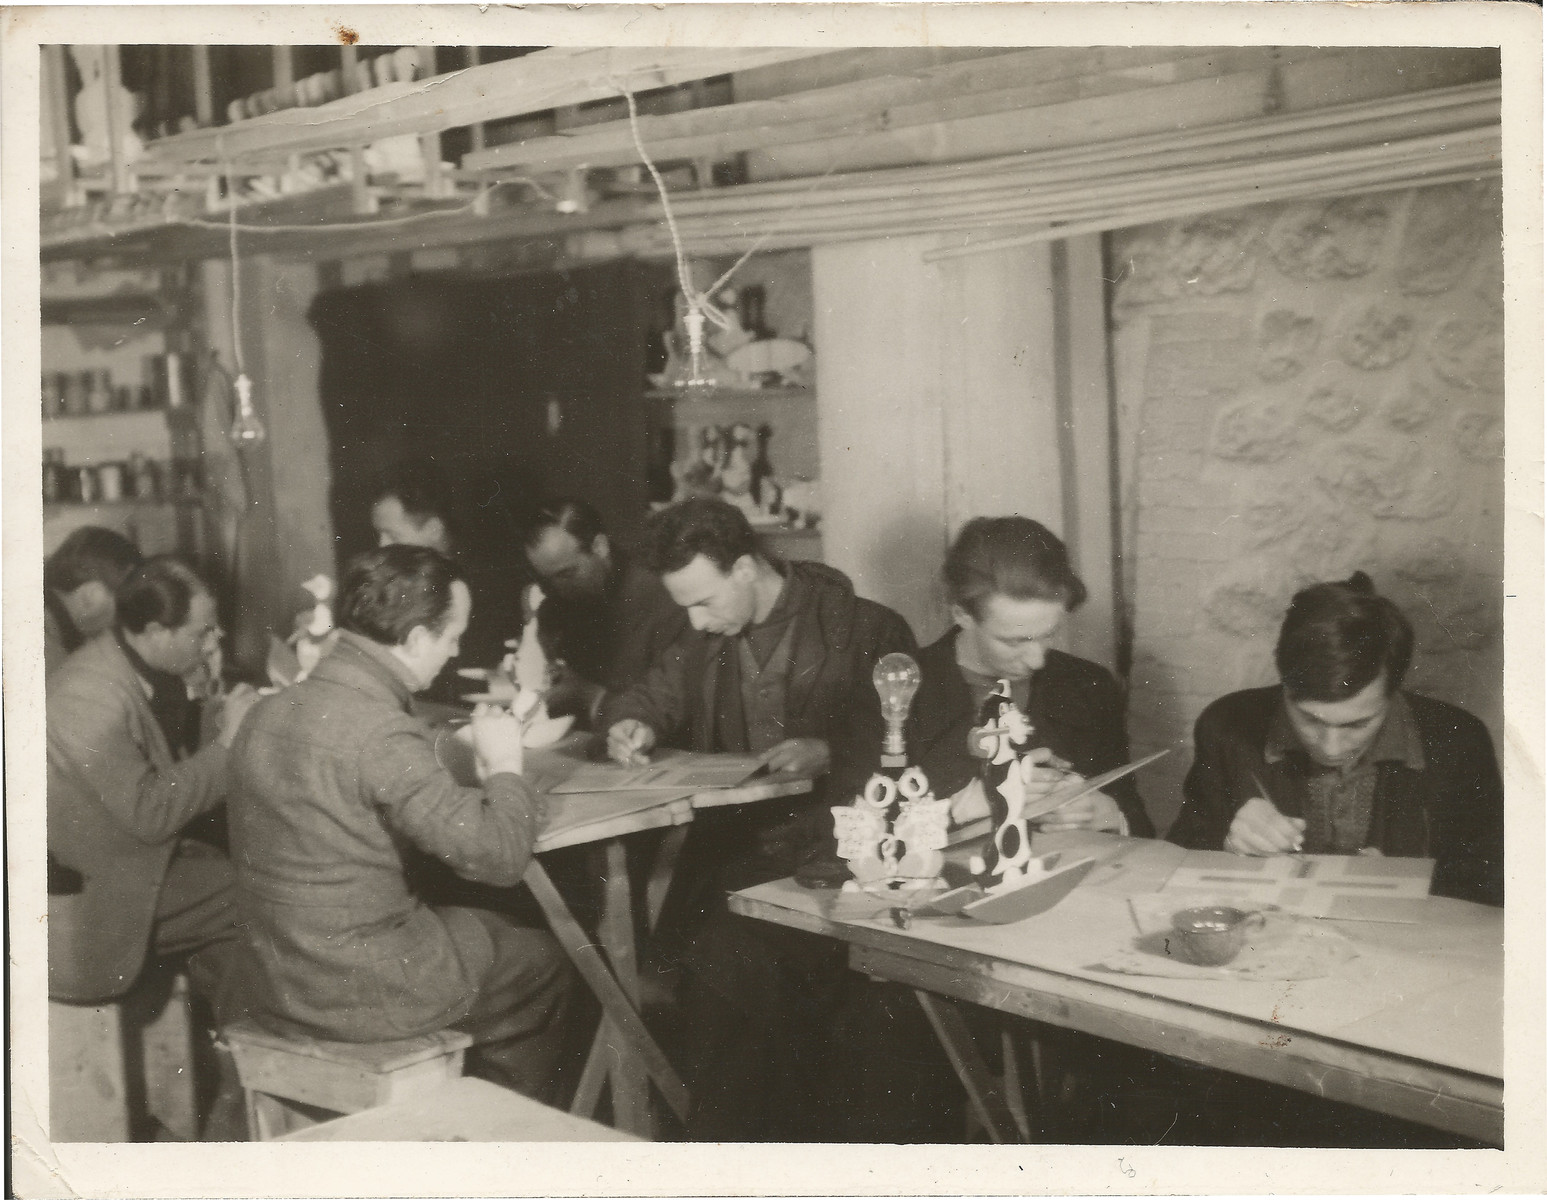 Internees decorate toys in a workshop in Les Milles.  Siegfried Lindheimer is pictured in the first row, second from the left.